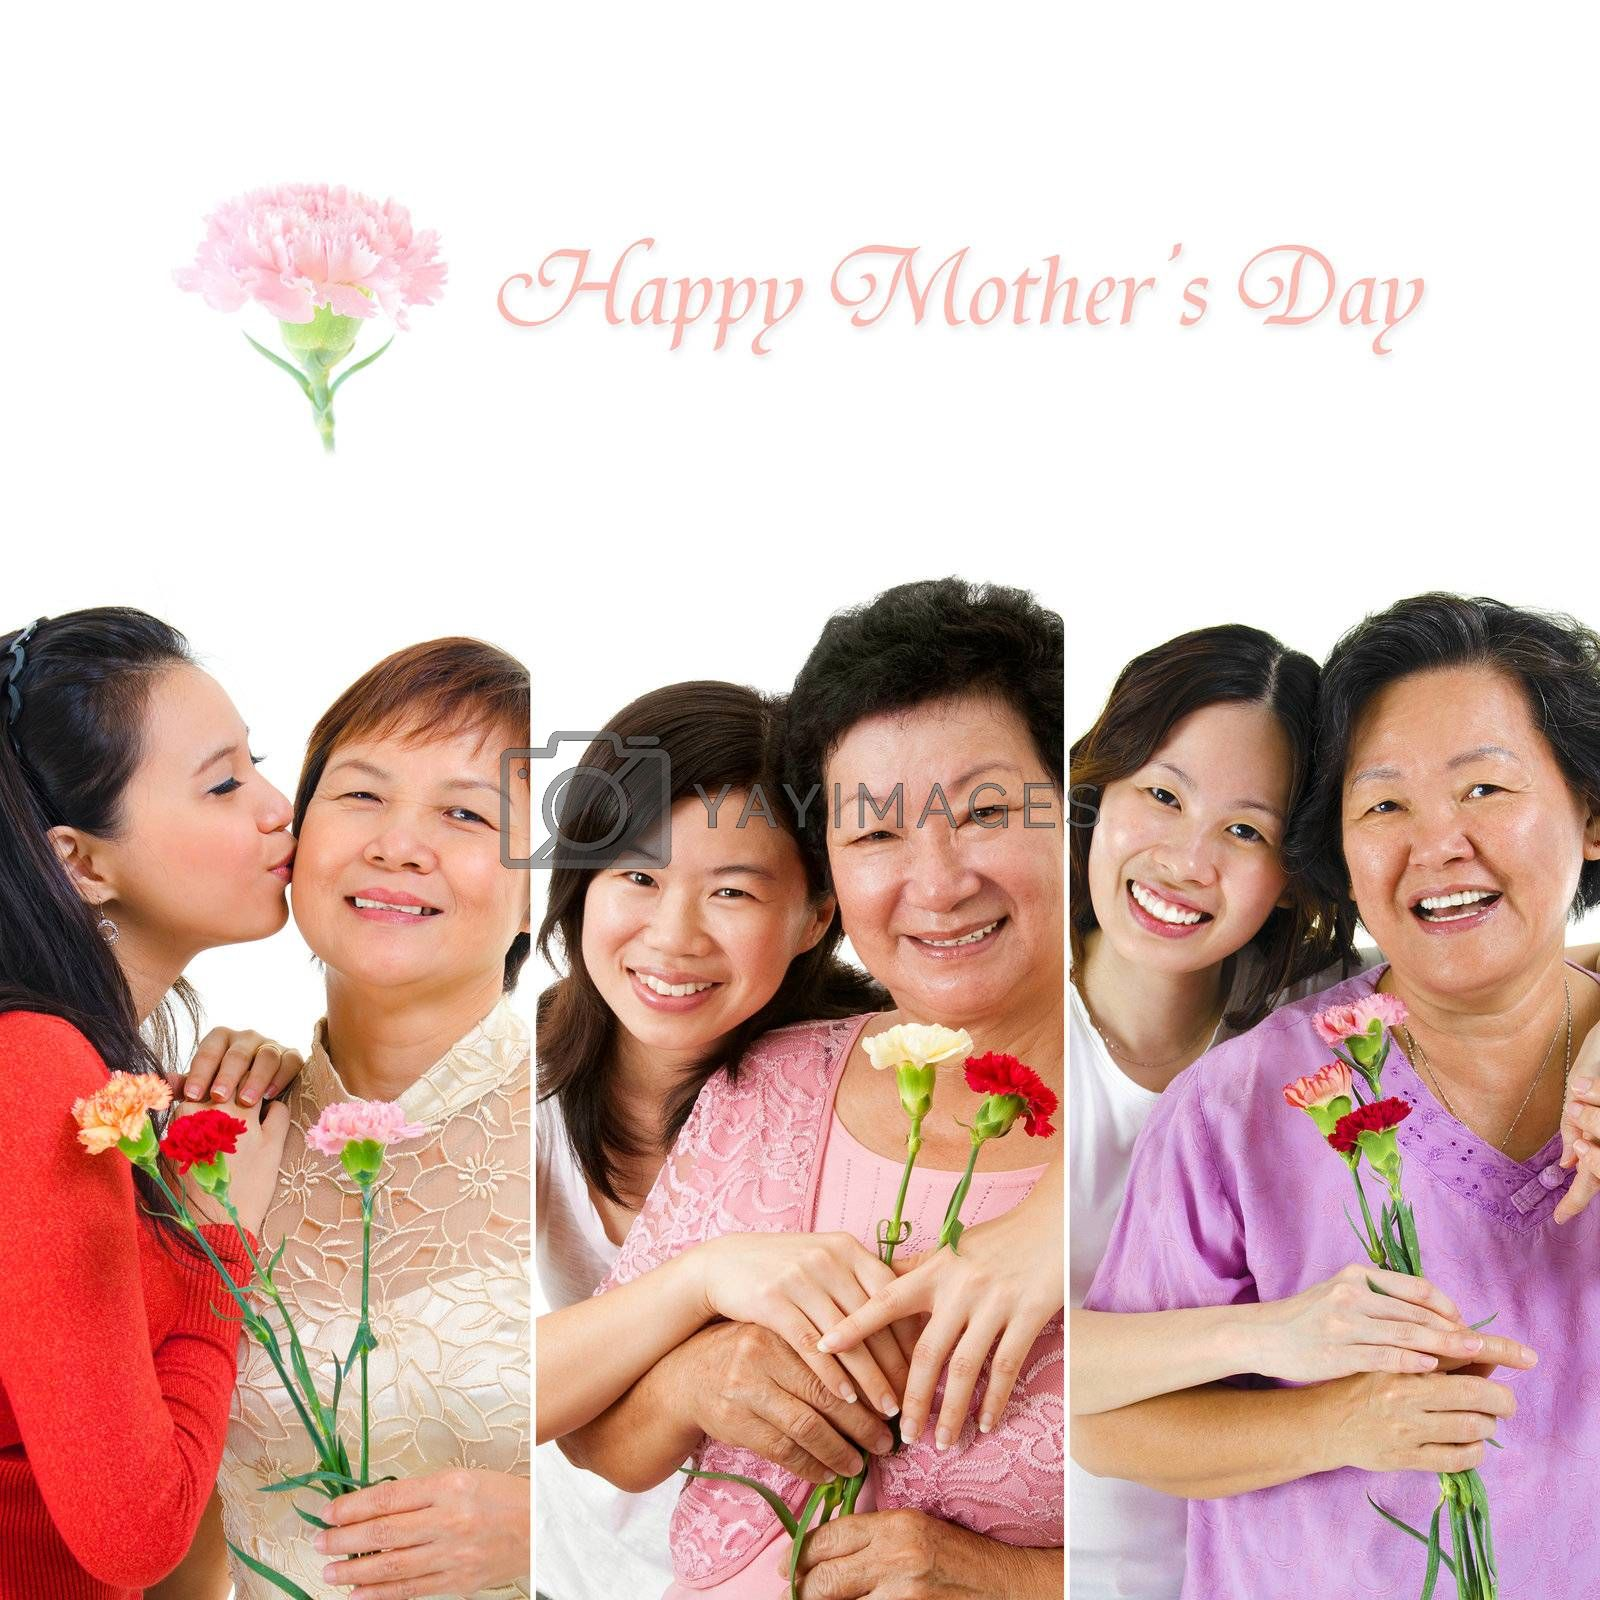 Mother's day celebration. Group of different mothers and daughter holding carnation flower.